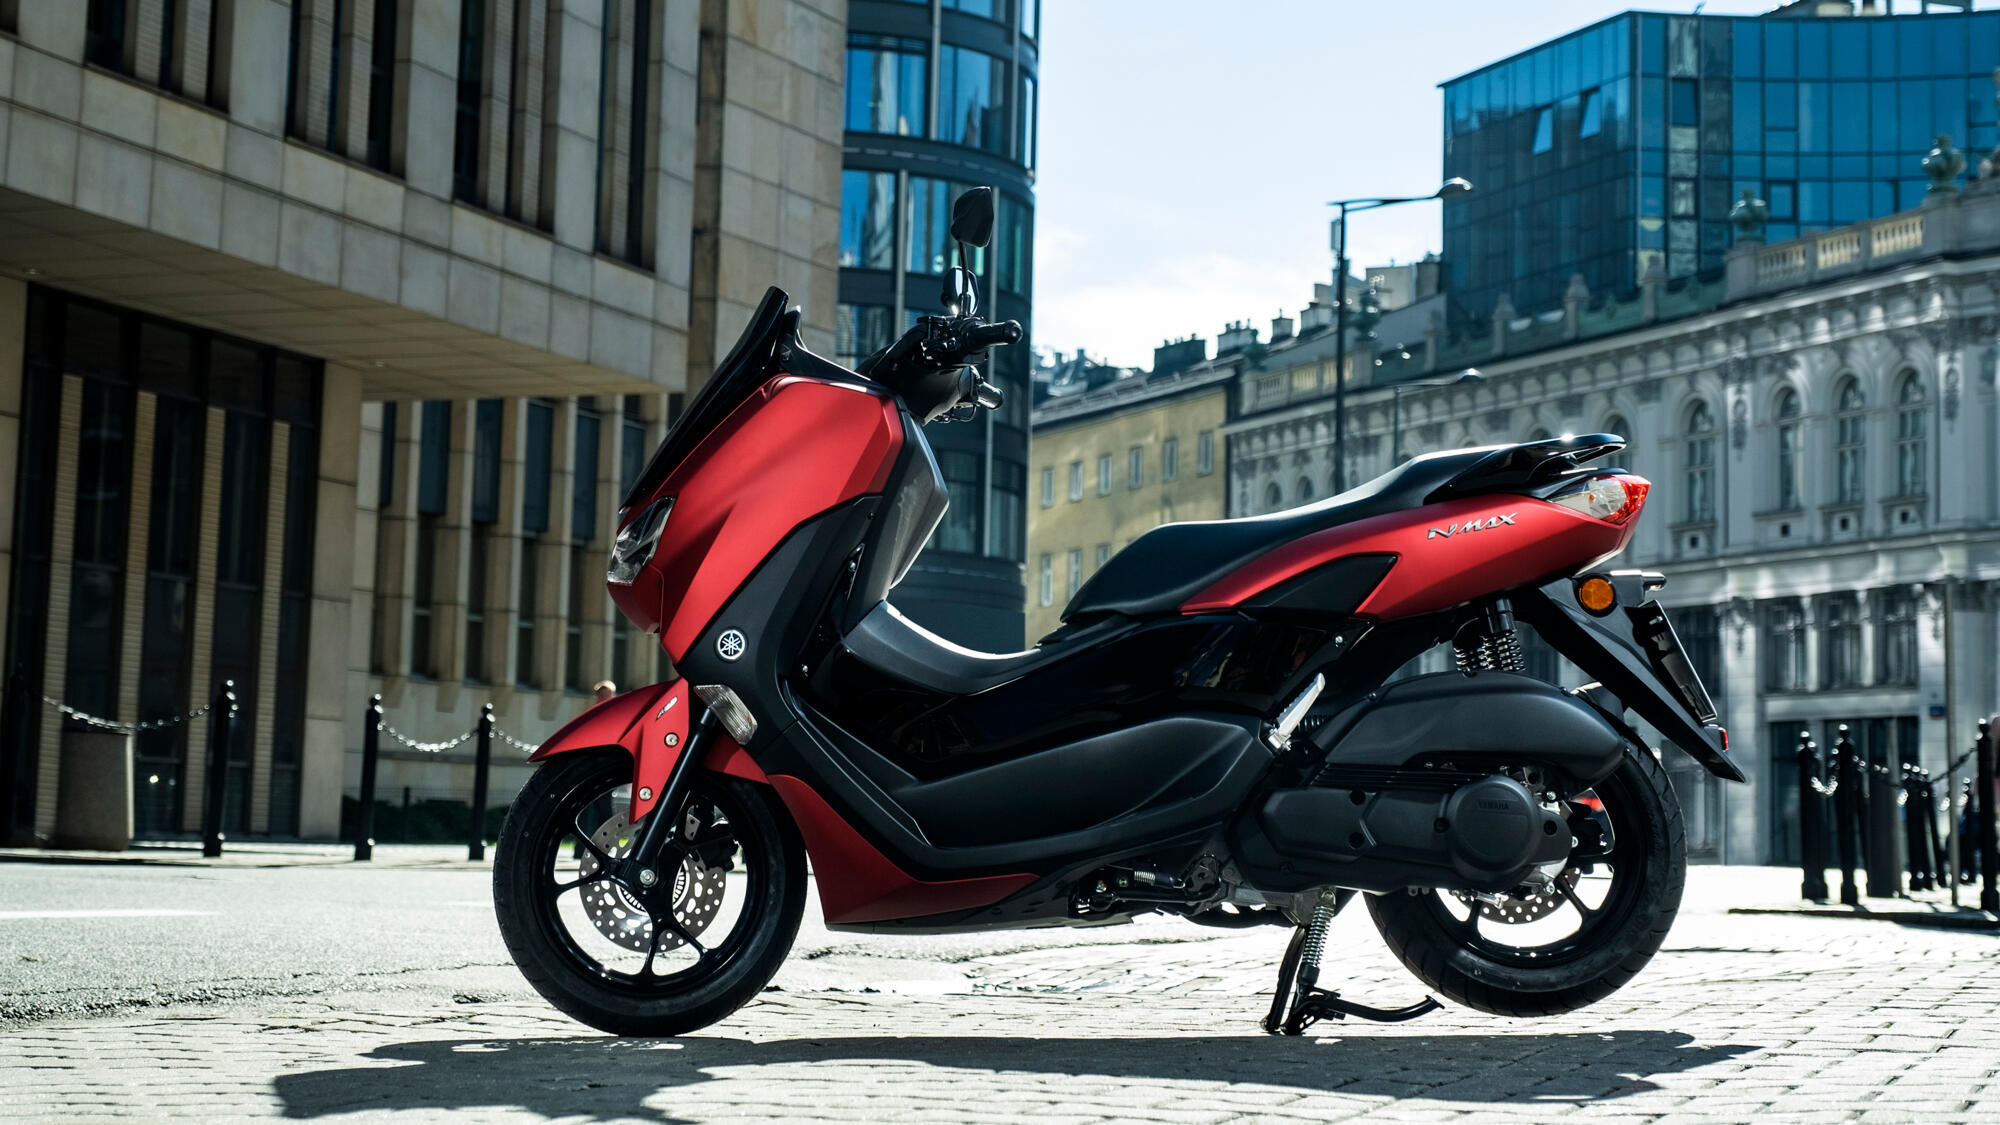 Nmax 125 scooter